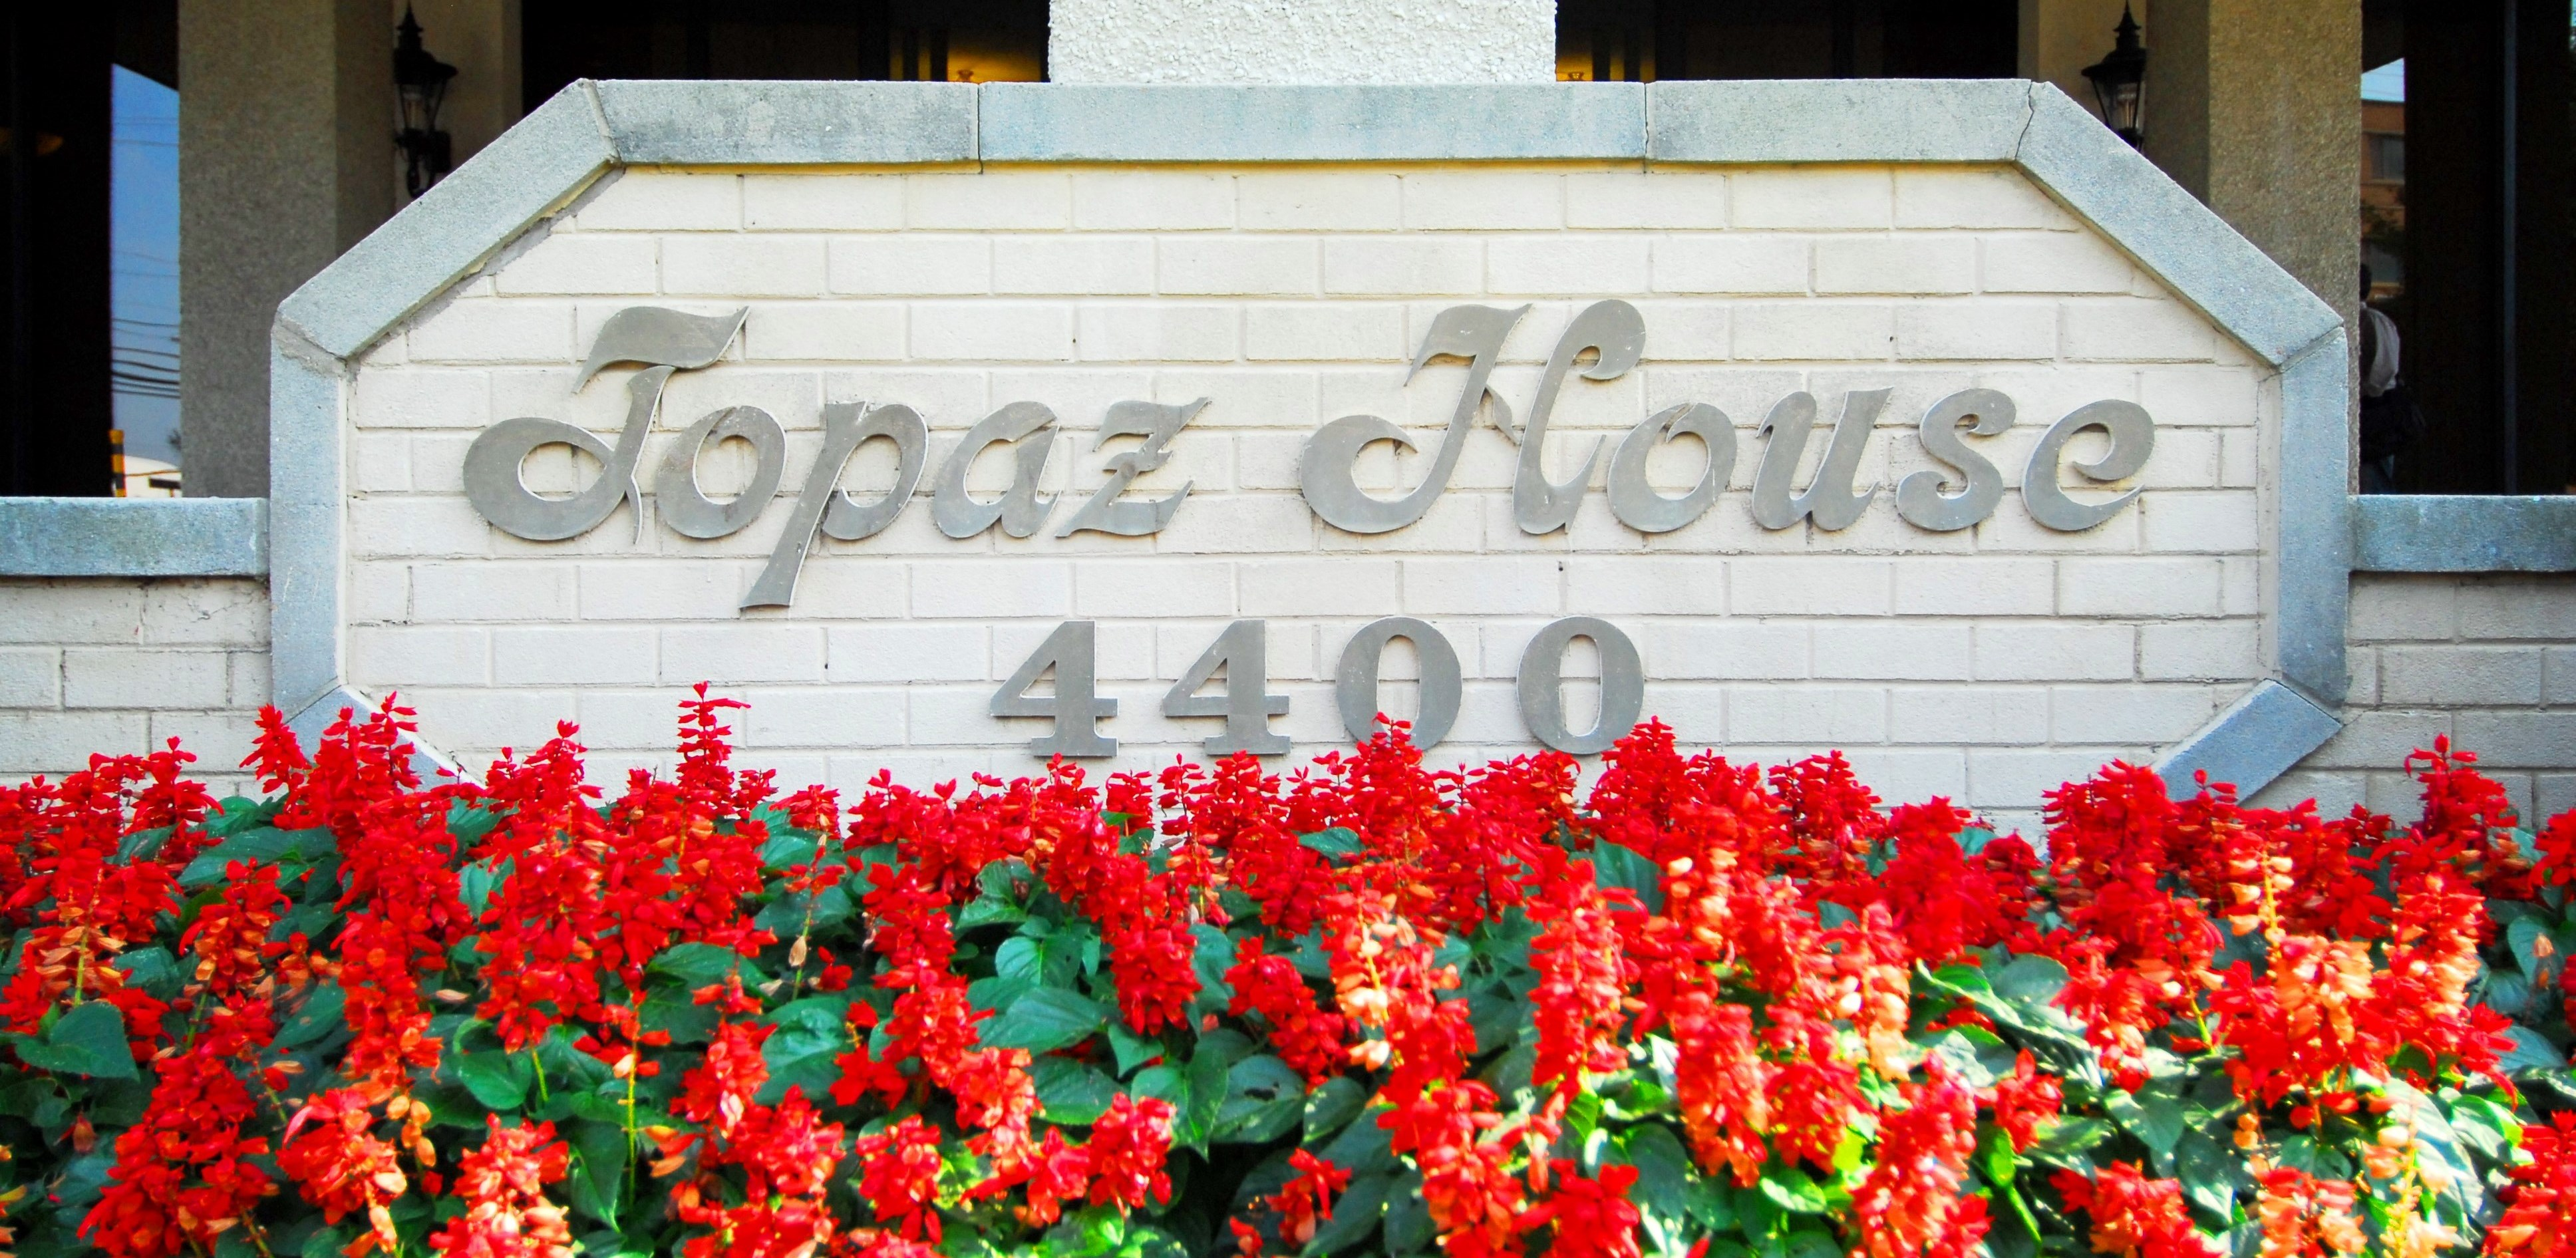 Topaz House Sign.jpg